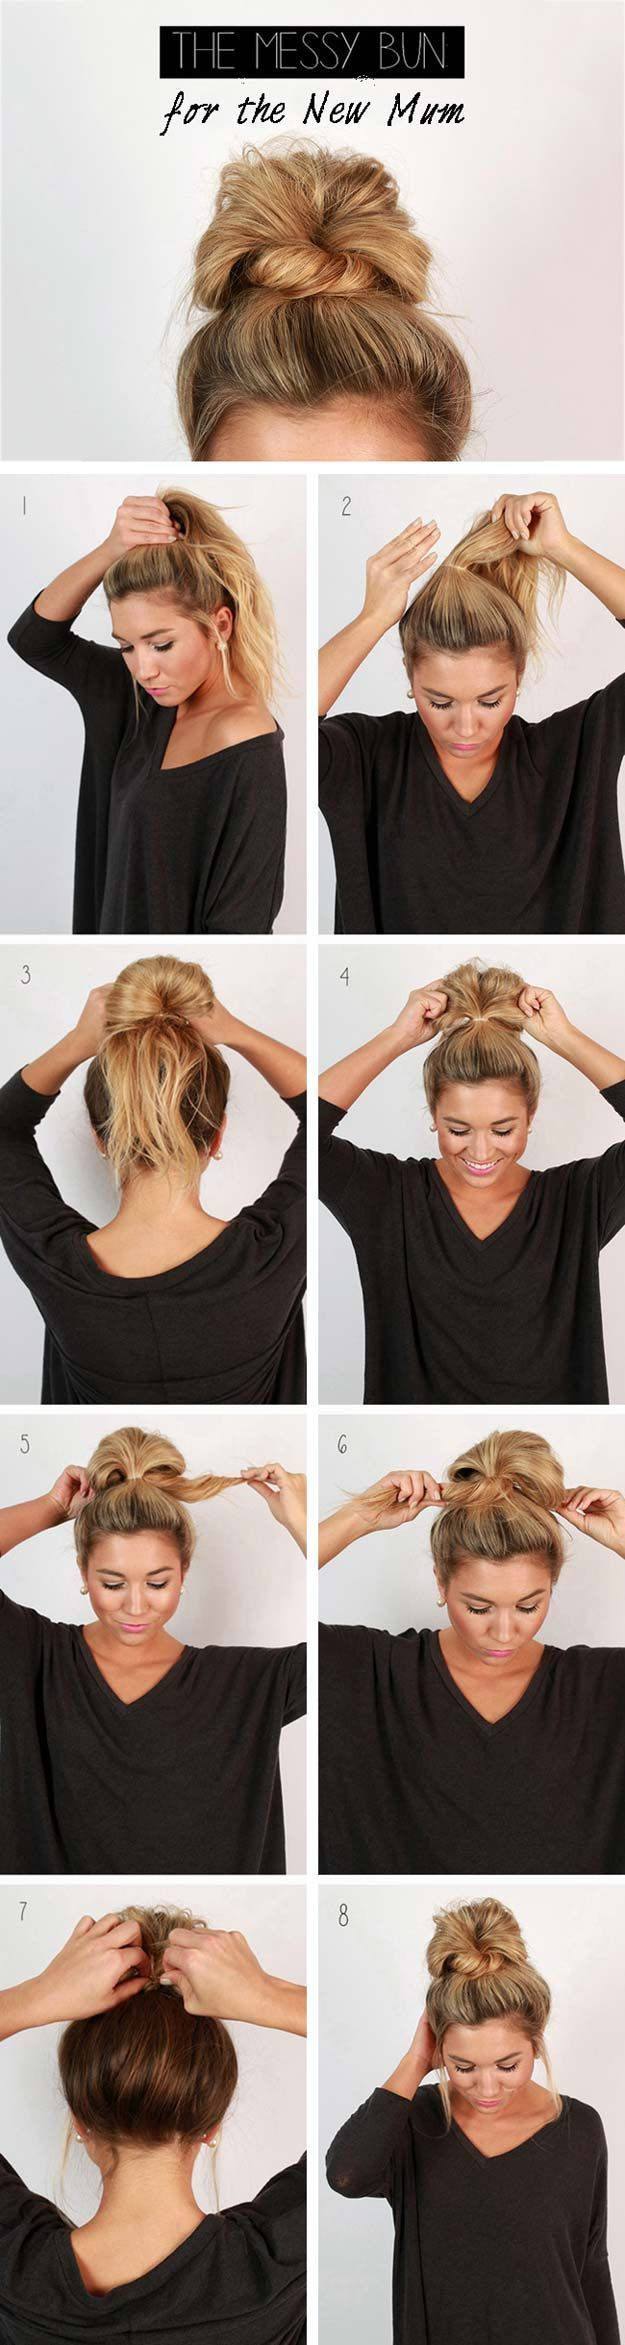 41 Diy Cool Easy Hairstyles That Real People Can Do At Home Hair Styles Long Hair Styles Medium Length Hair Styles